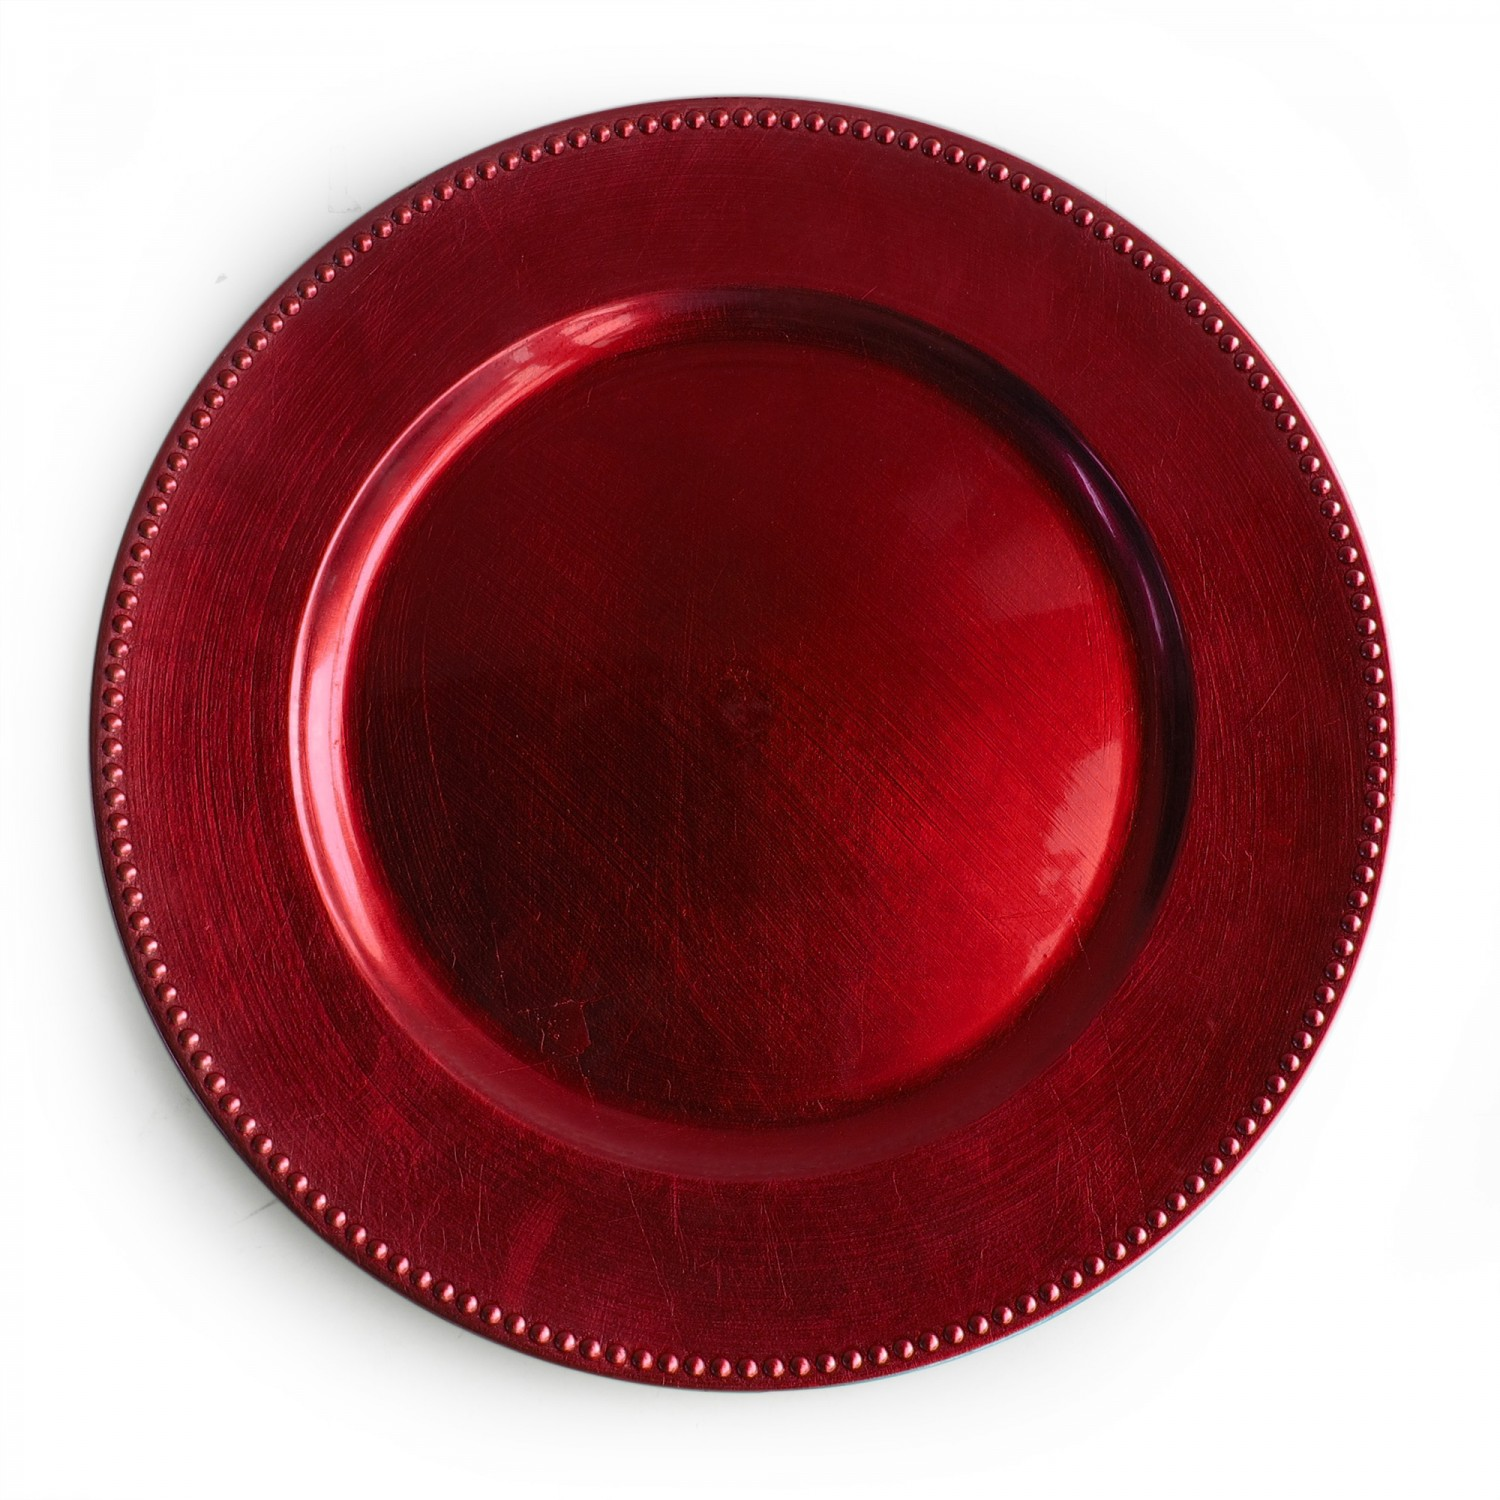 The Jay Companies 1270170 Round Red Beaded Charger Plate 13""